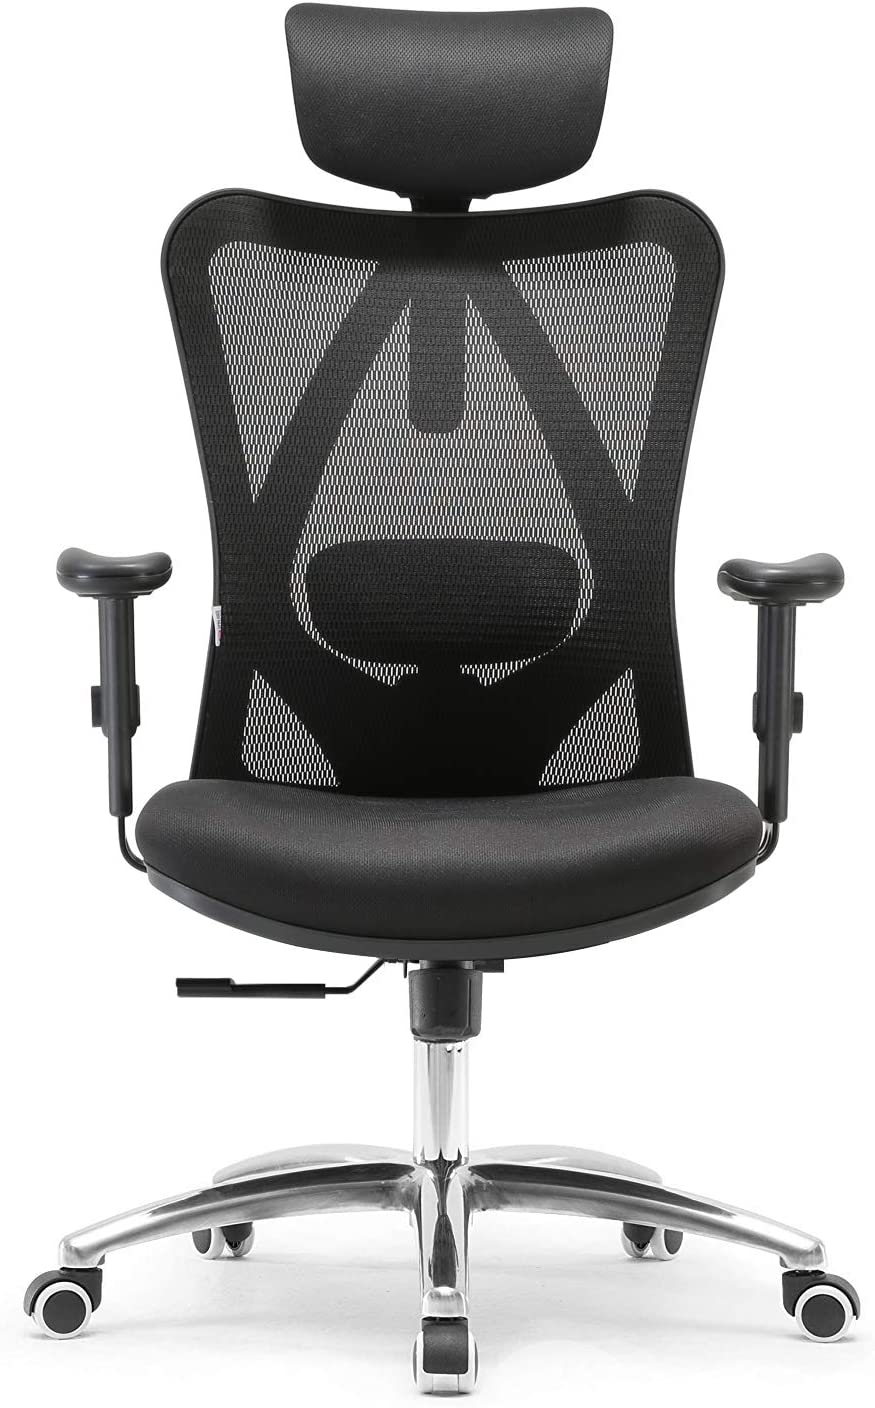 SIHOO Ergonomic Office Chair UK - Adjustable Headrest